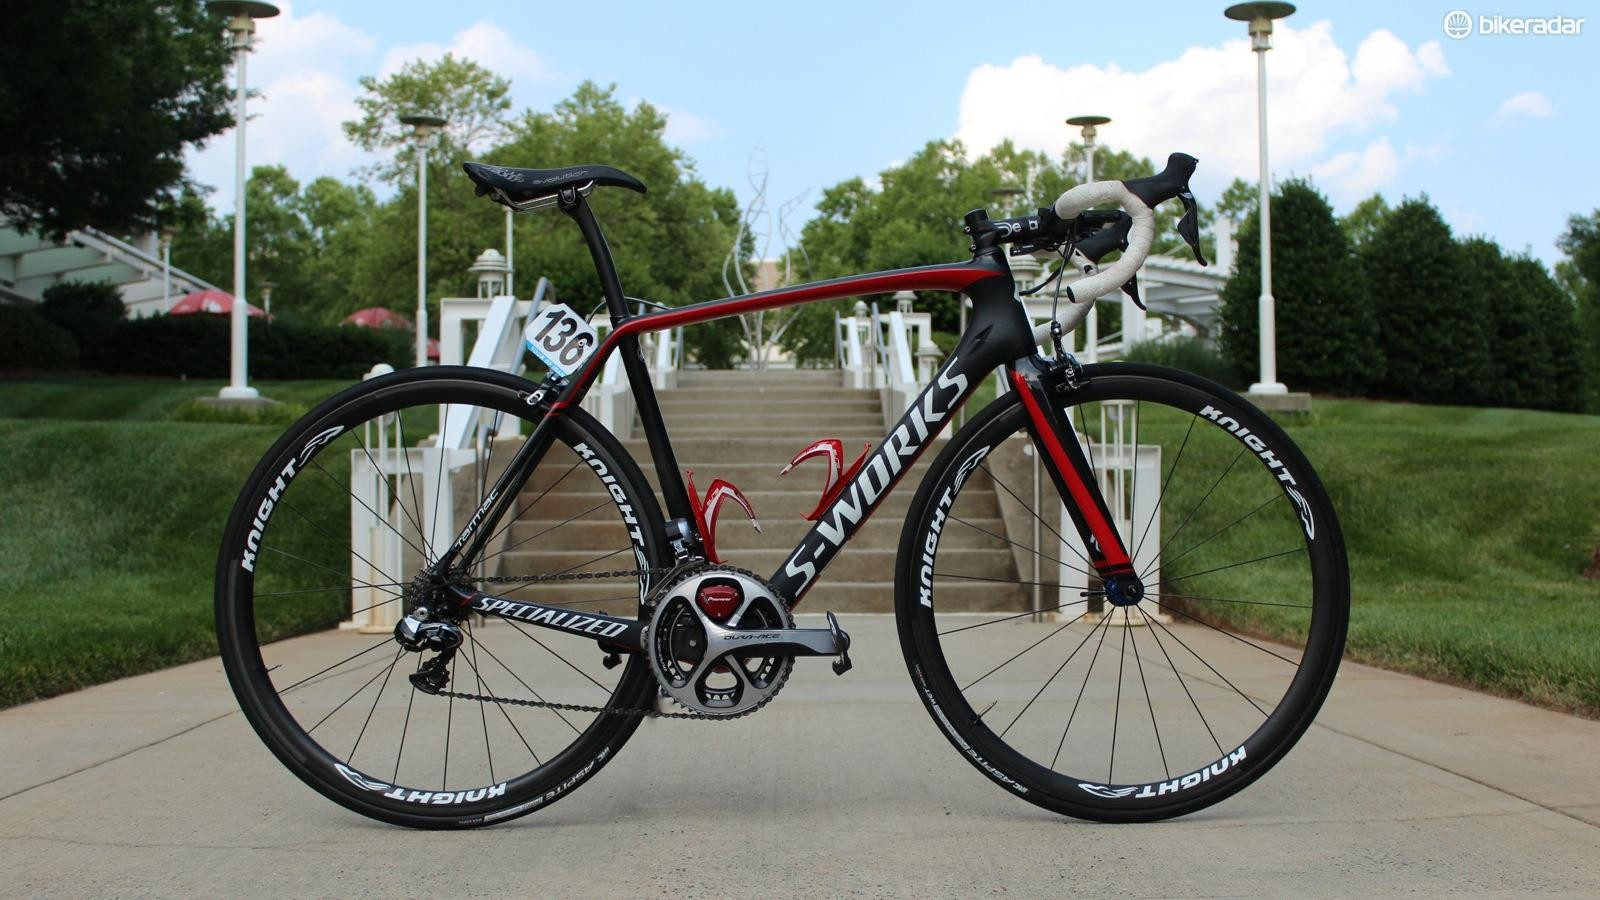 Connor McCutcheon's Team Illuminate Specialized S-Works